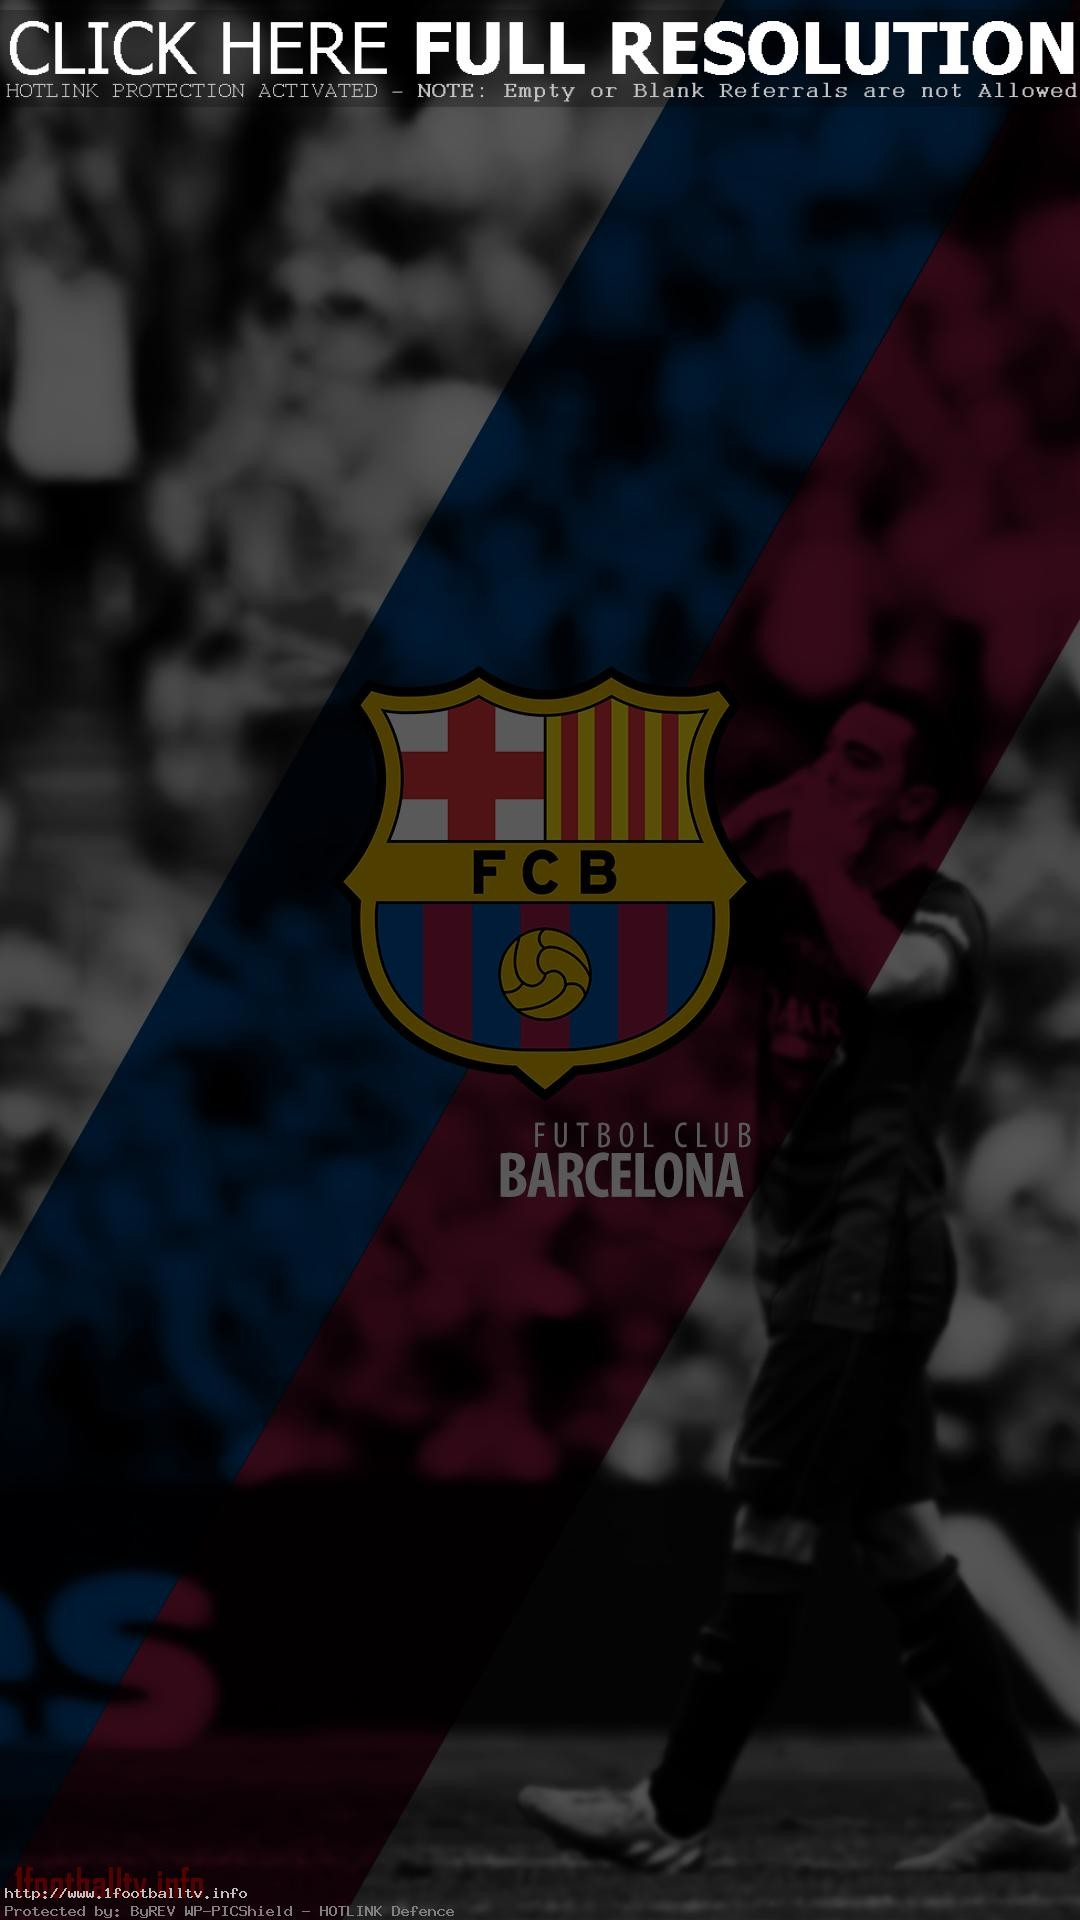 fc barcelona hd wallpapers for iphone 6 luxury barcelona fc iphone  background full hd barcelona fc